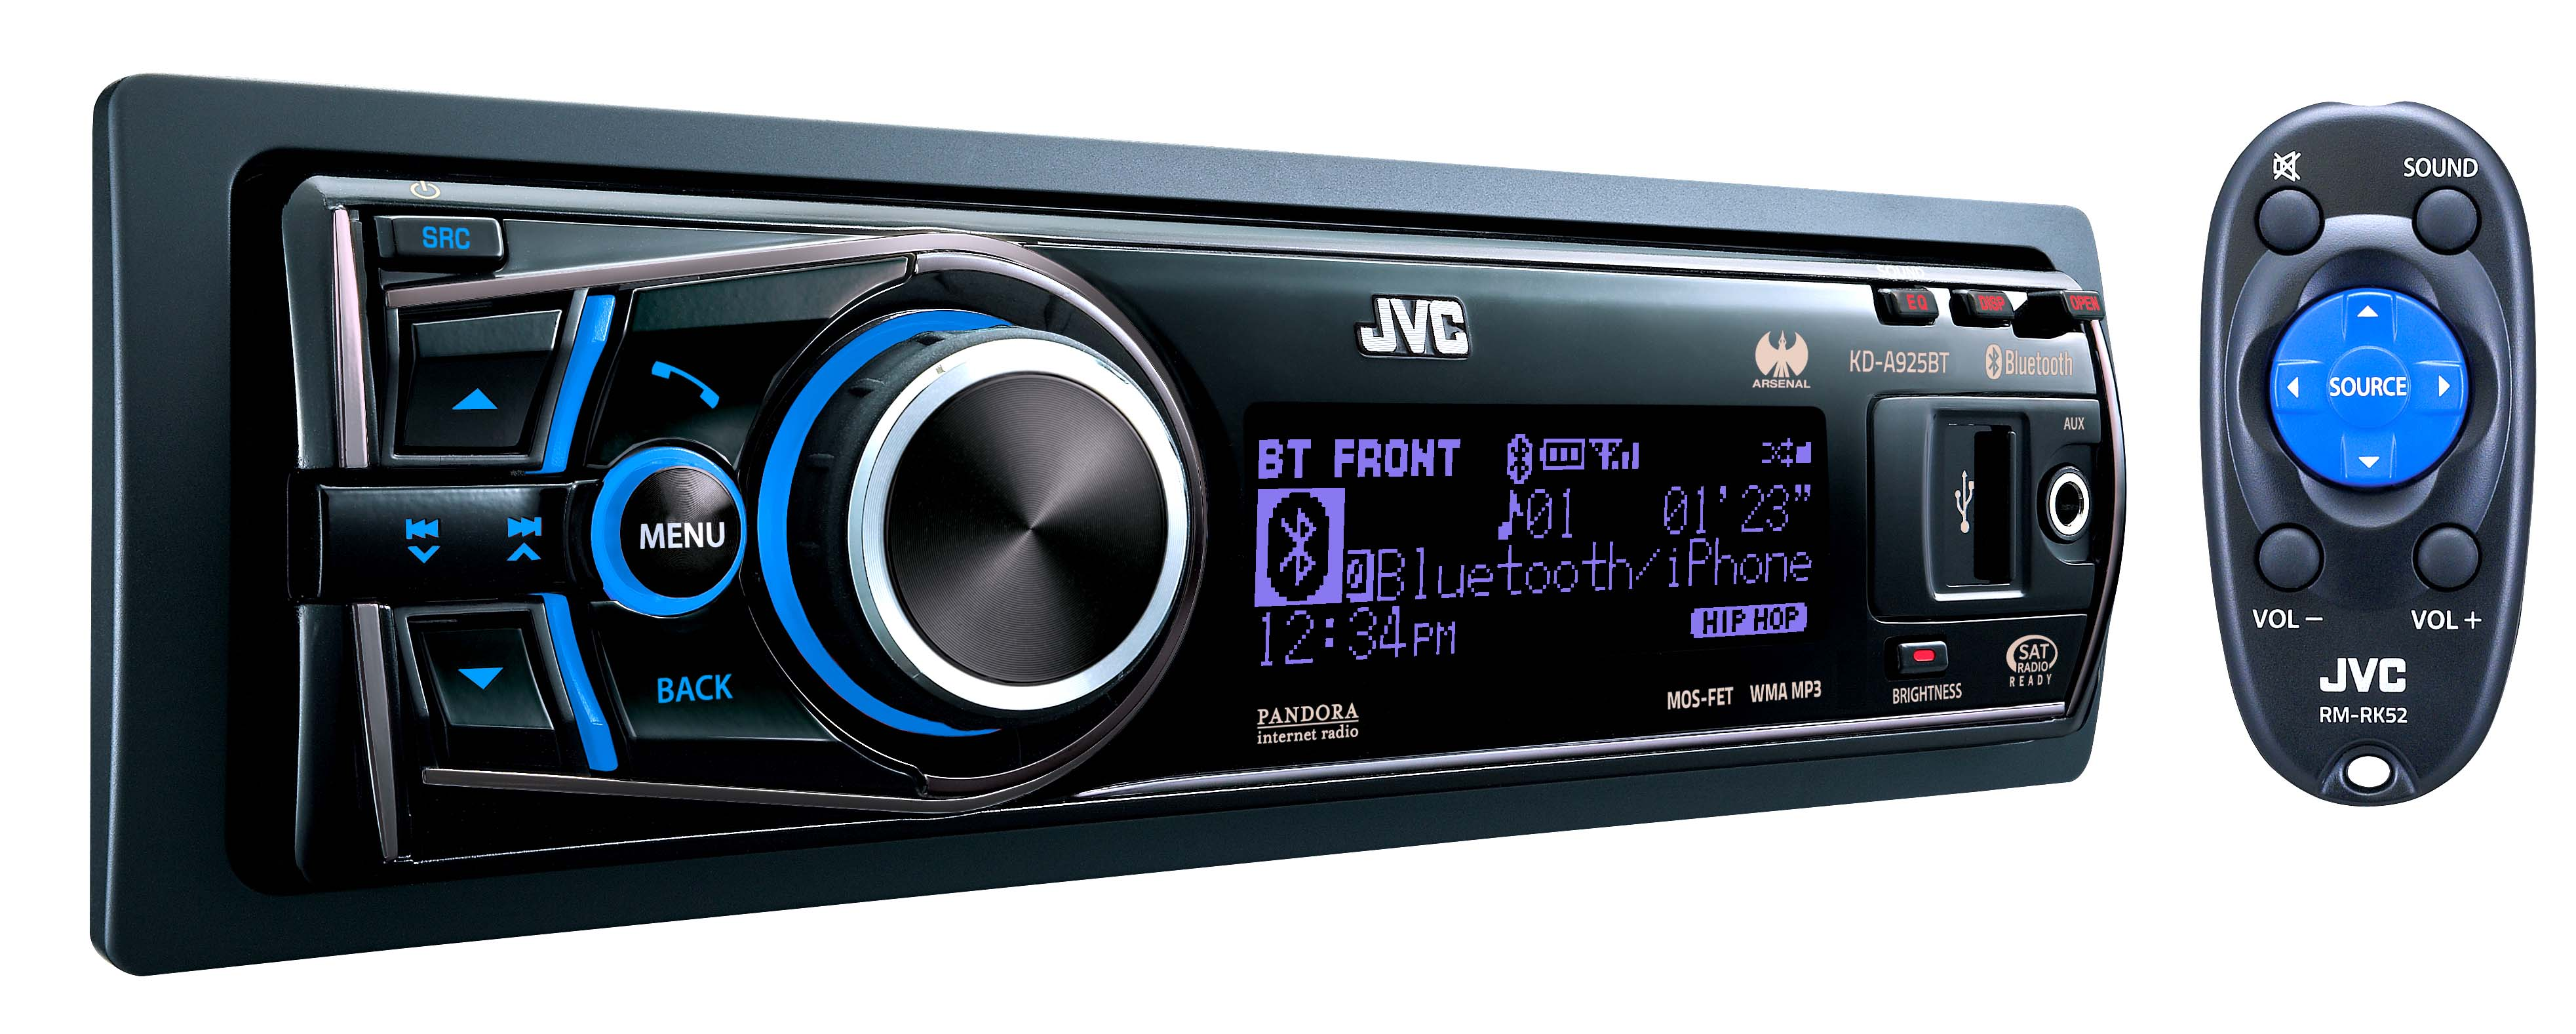 Jvc Kd Rbt Car Mp Cd Players At Onlinecarstereocom 3930x1577